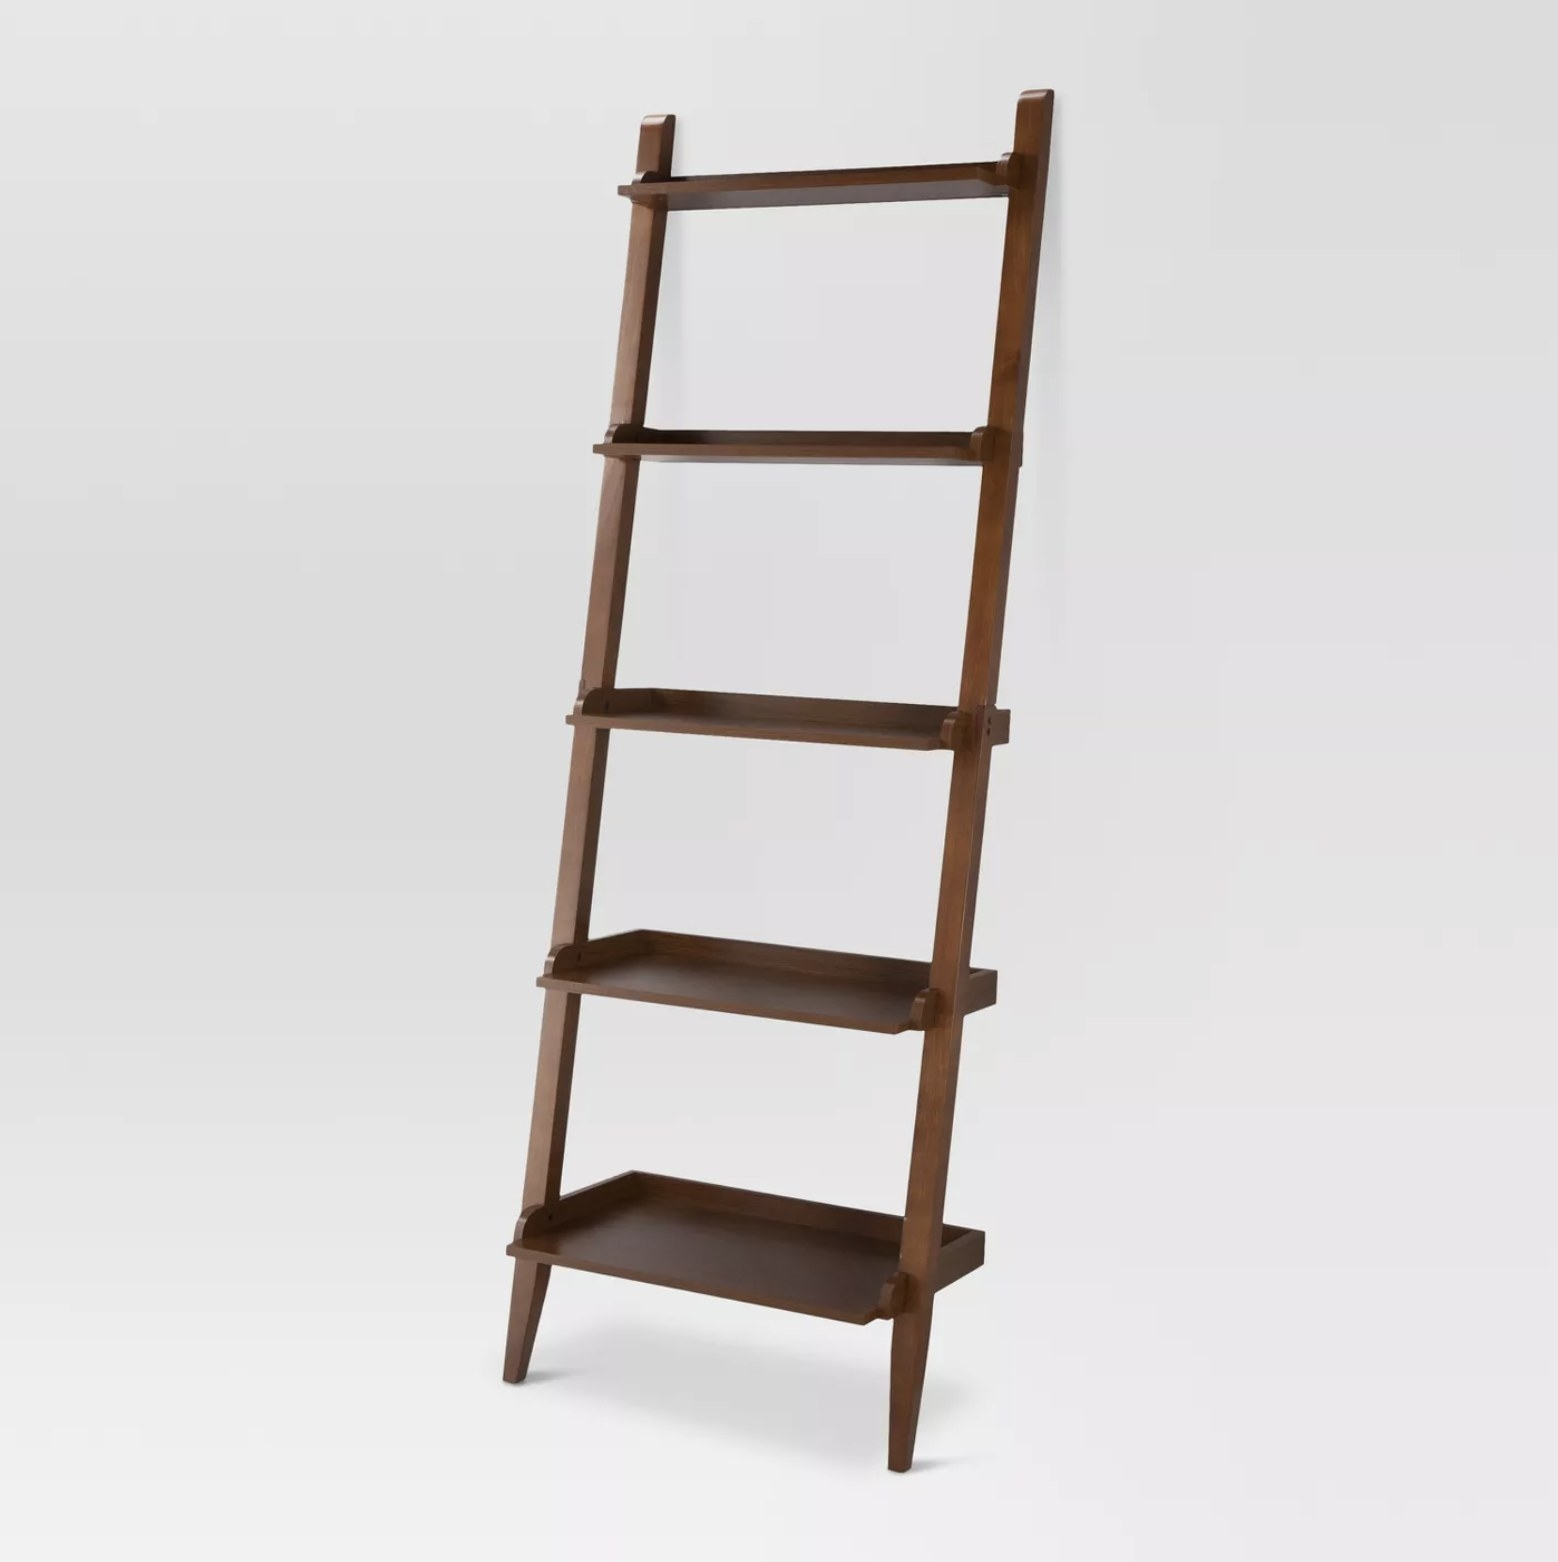 The wooden ladder bookcase